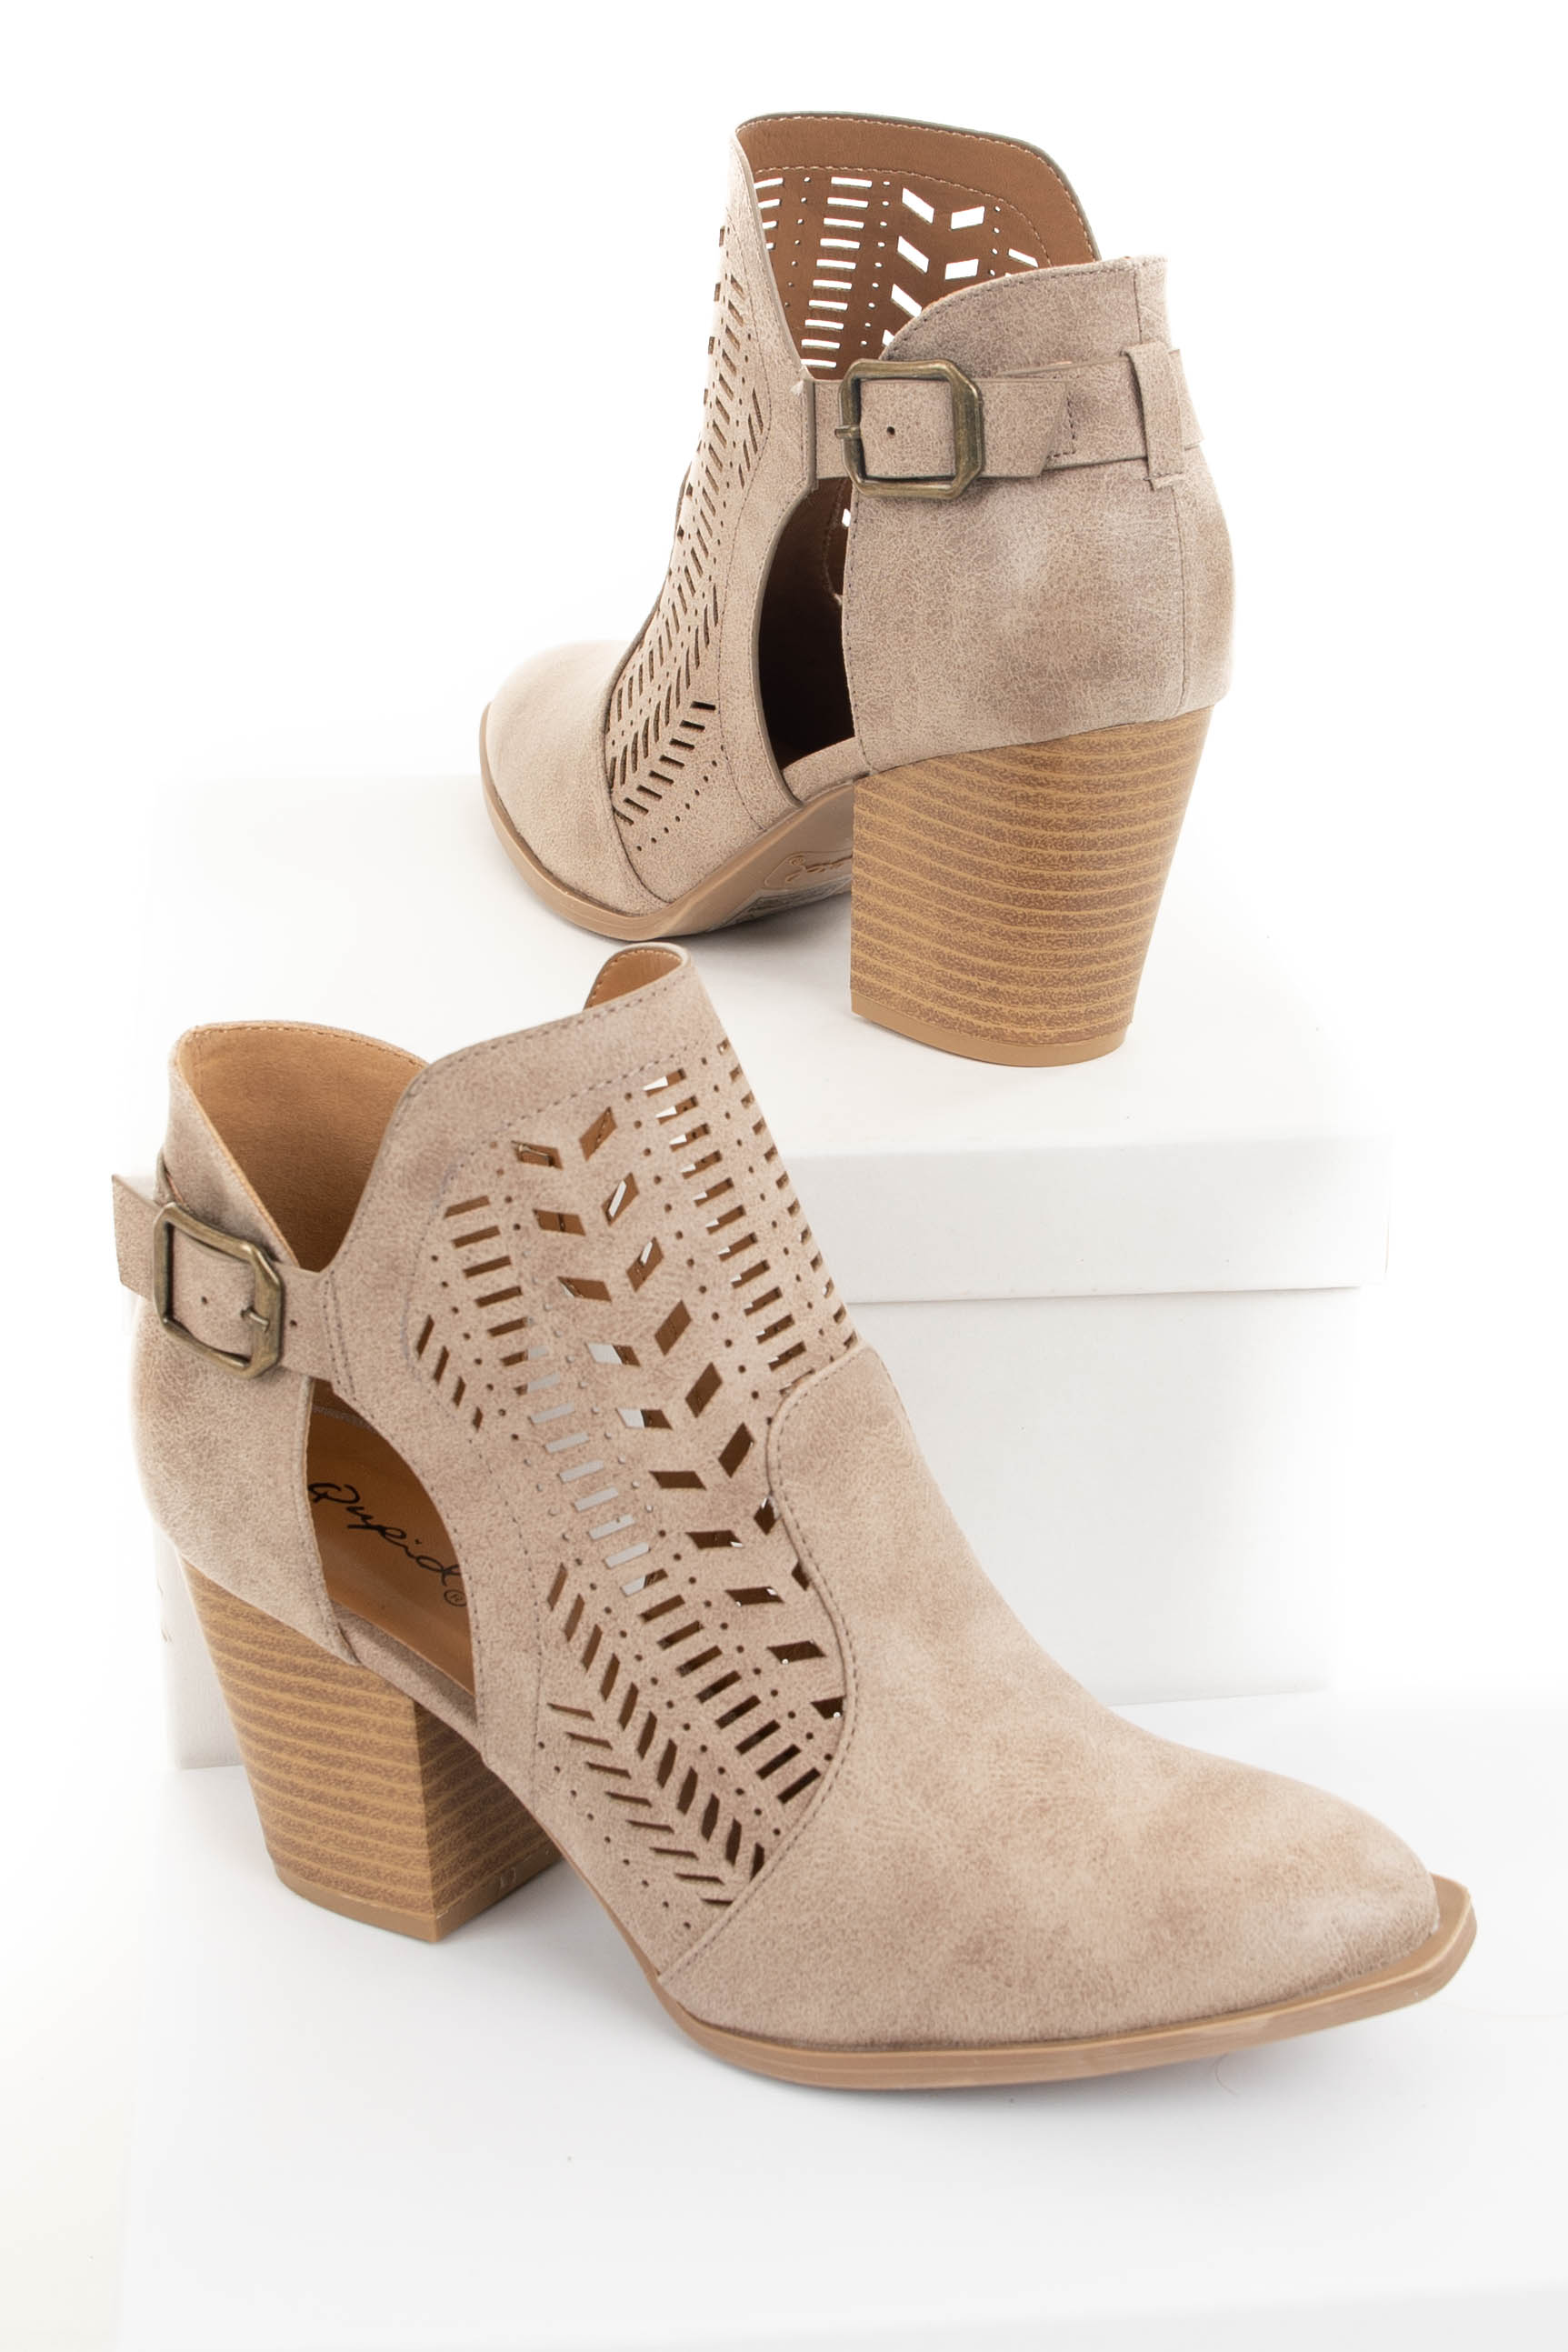 Taupe Faux Leather Heeled Bootie with Cutout Details